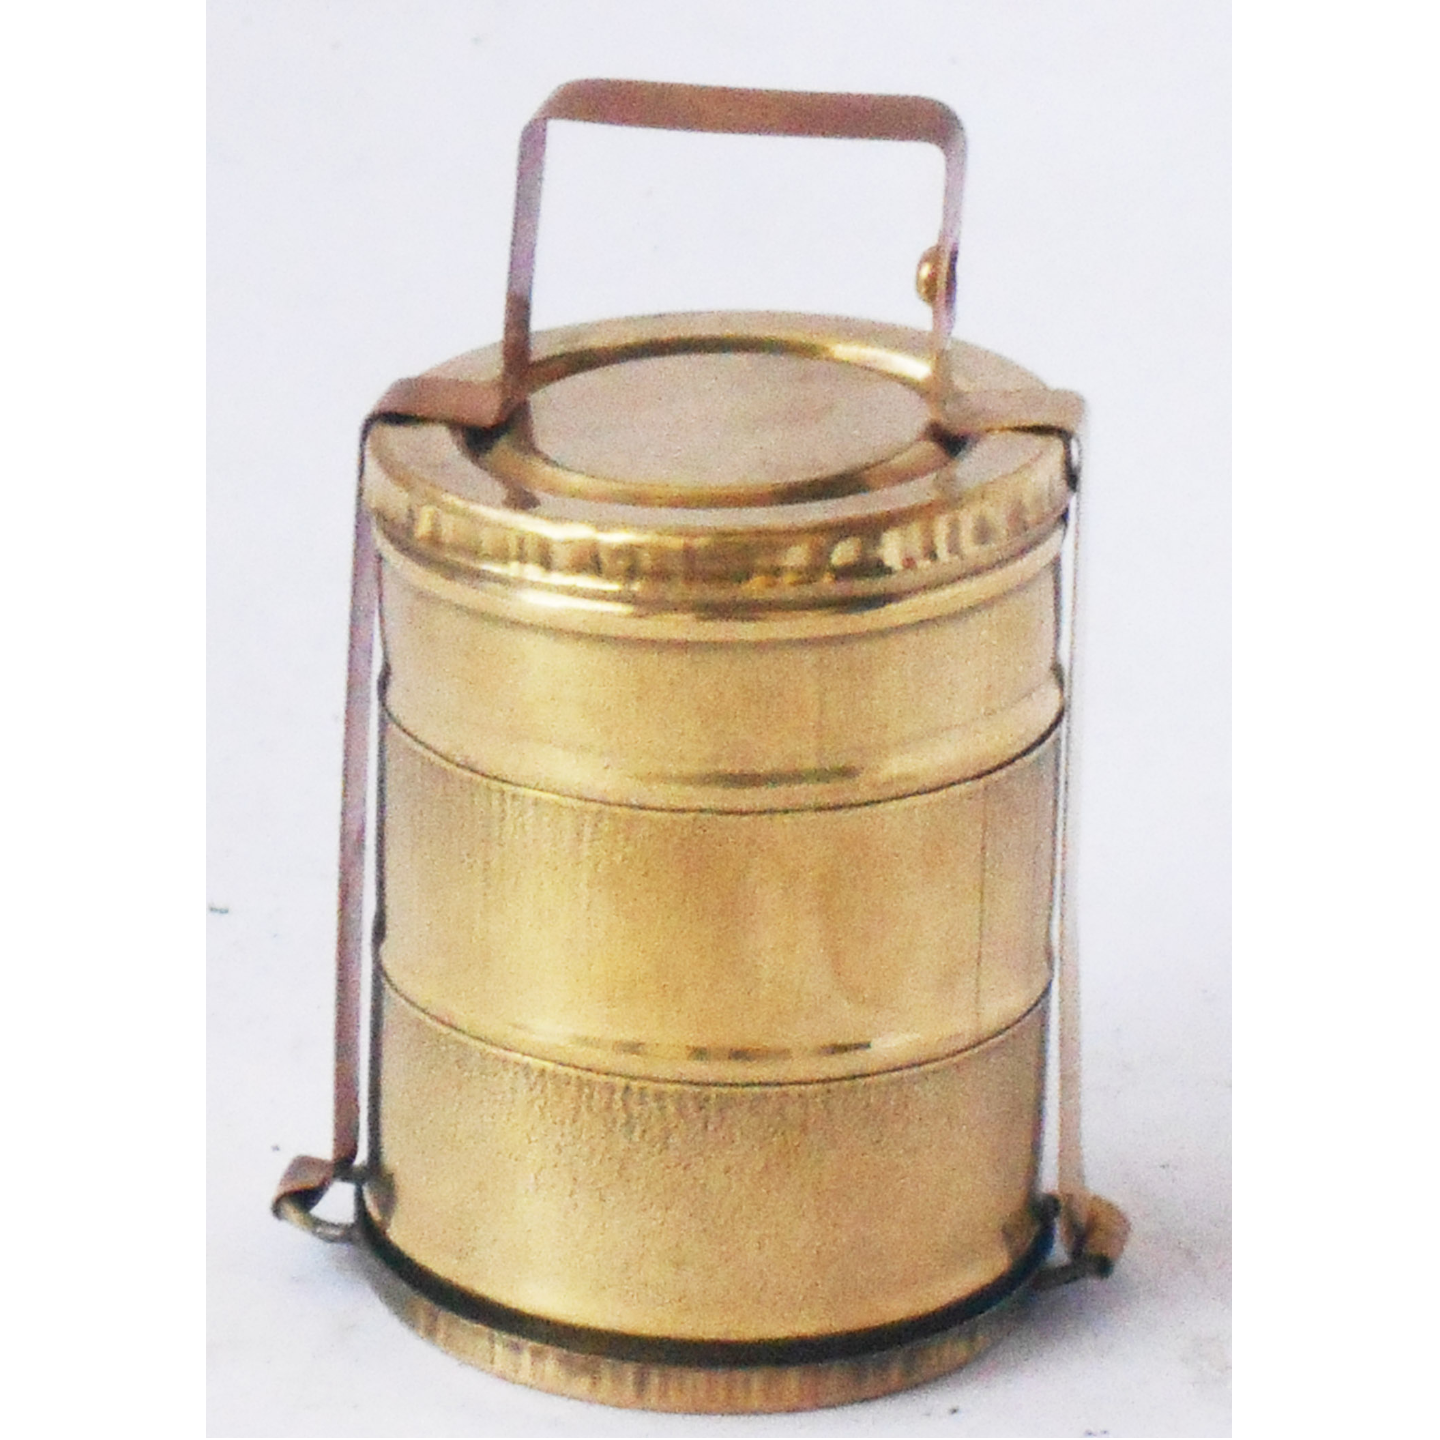 Brass Lunch Box Small Miniature Toy For Children Playing -1.6*1.6*3.5 Inch (Z370 C)